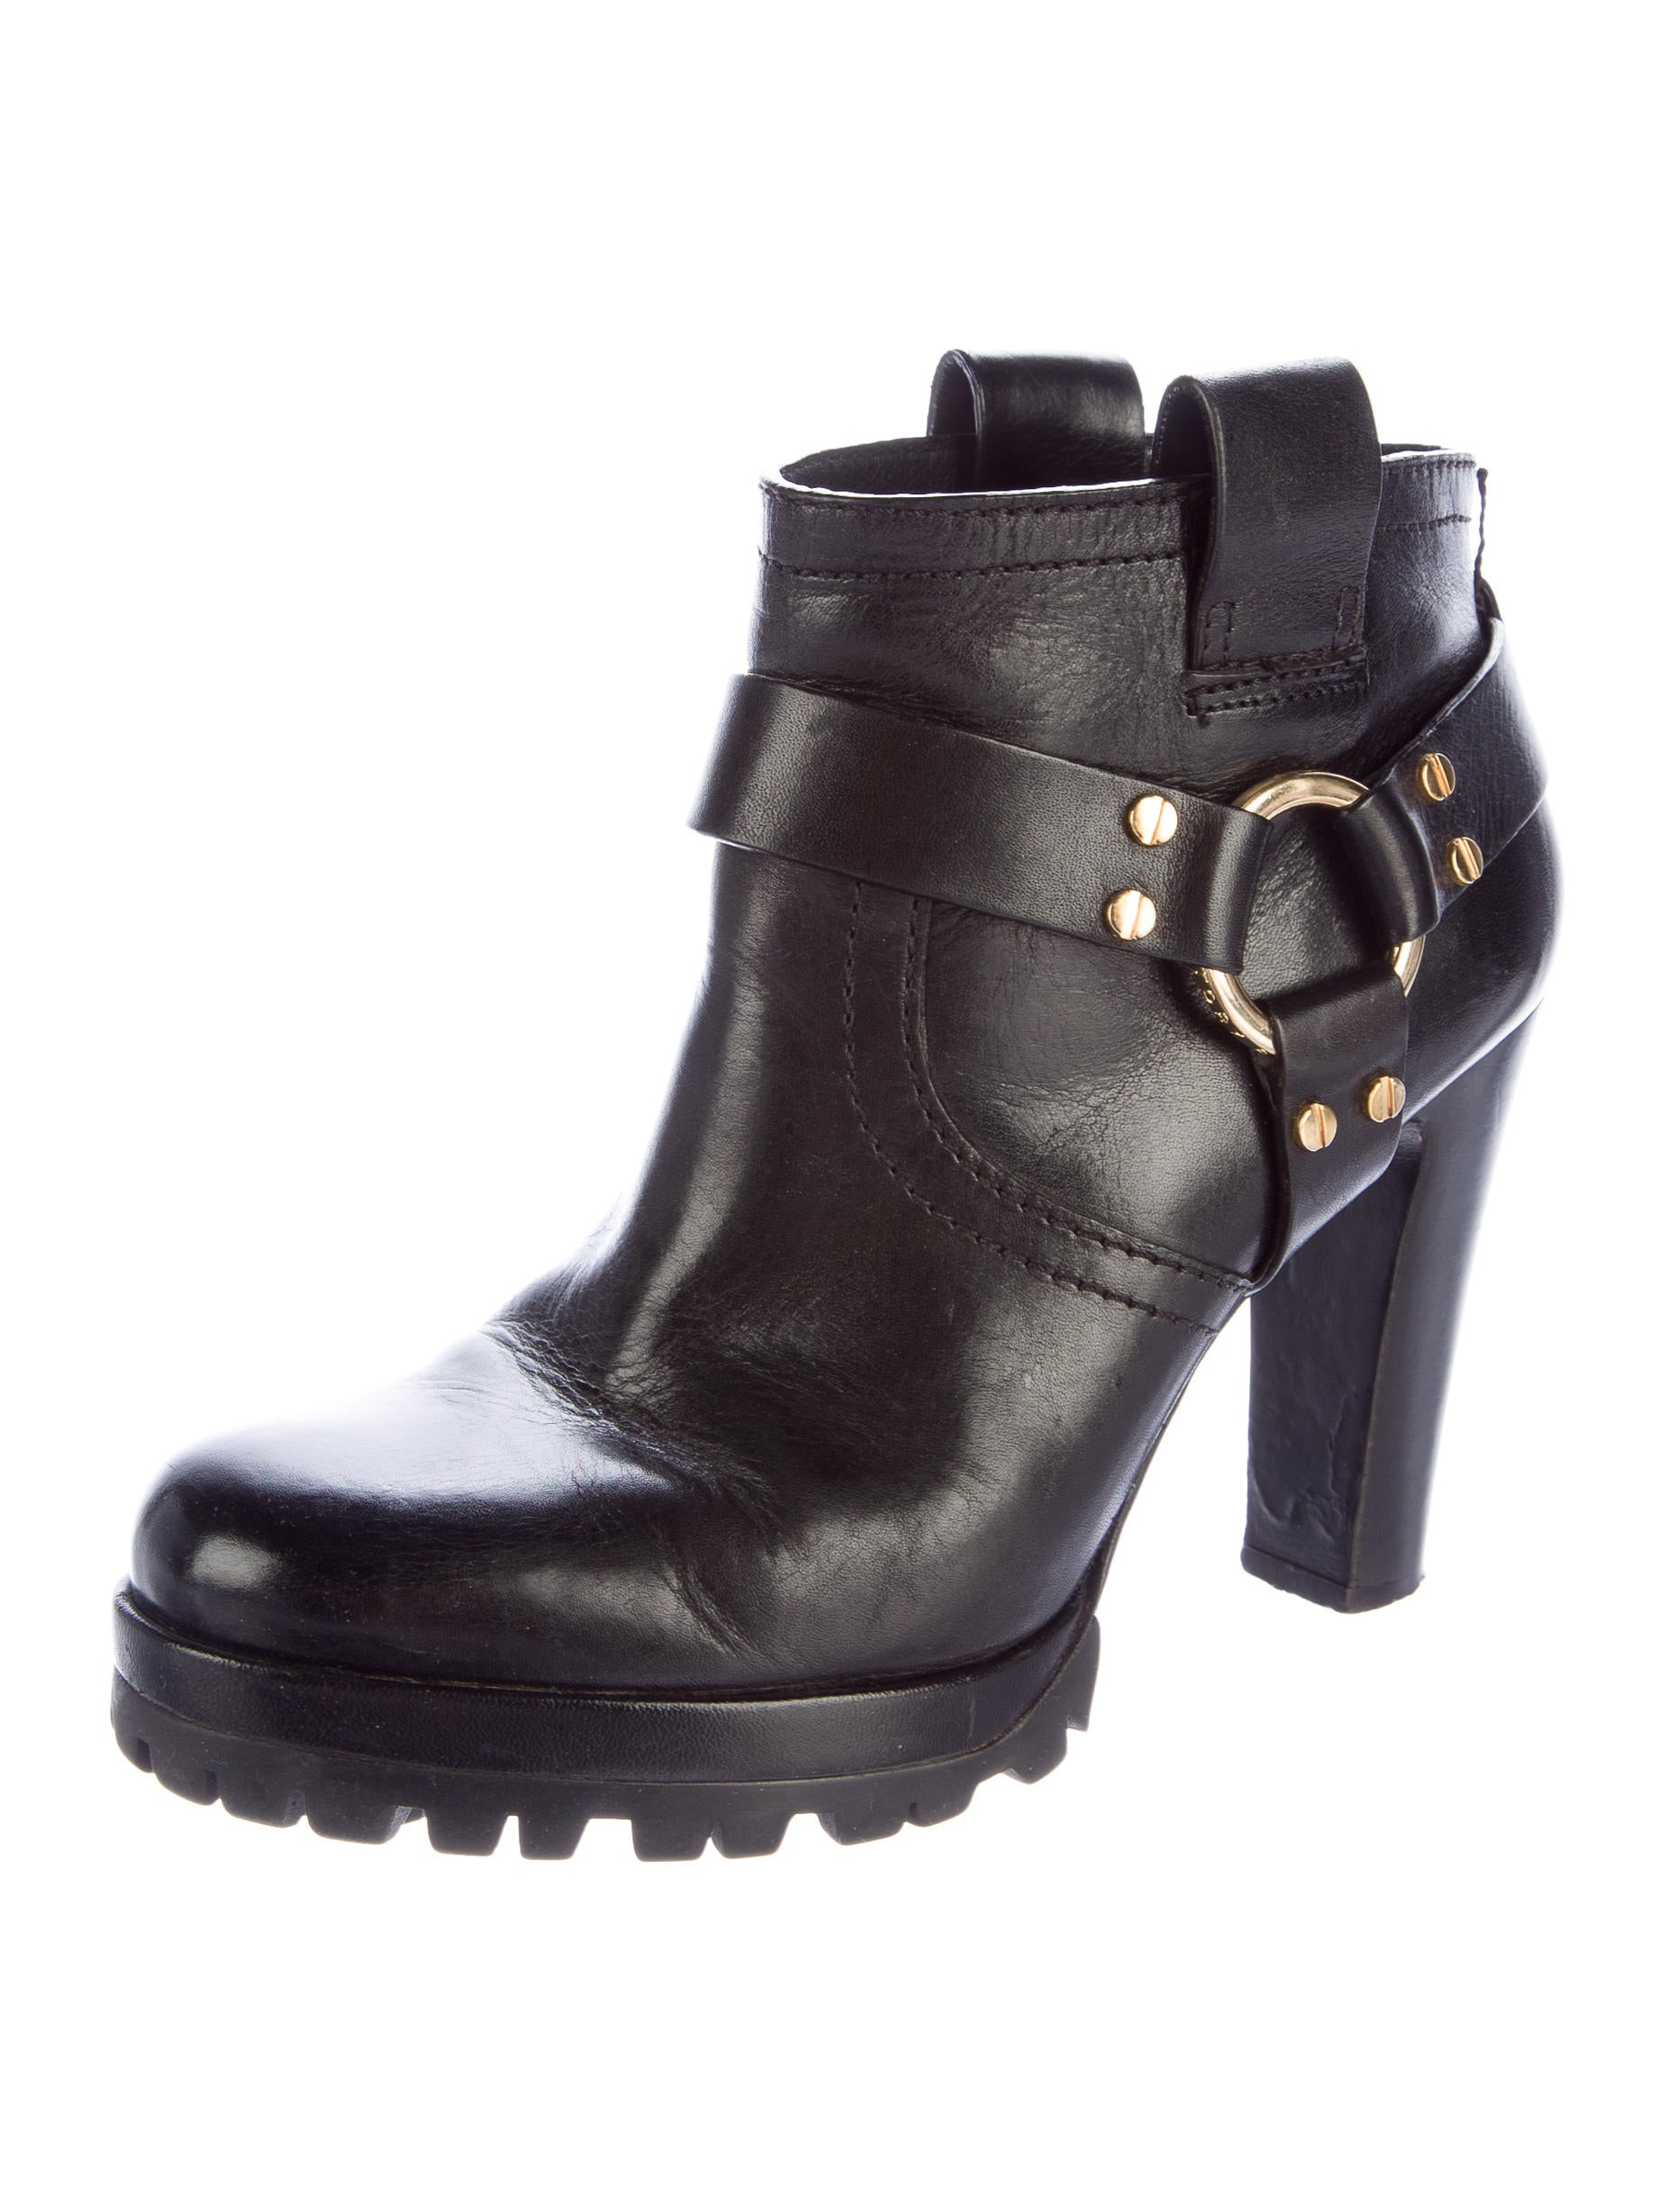 Platform Ankle Boots with FREE Shipping & Exchanges, and a % price guarantee. Choose from a huge selection of Platform Ankle Boots styles.